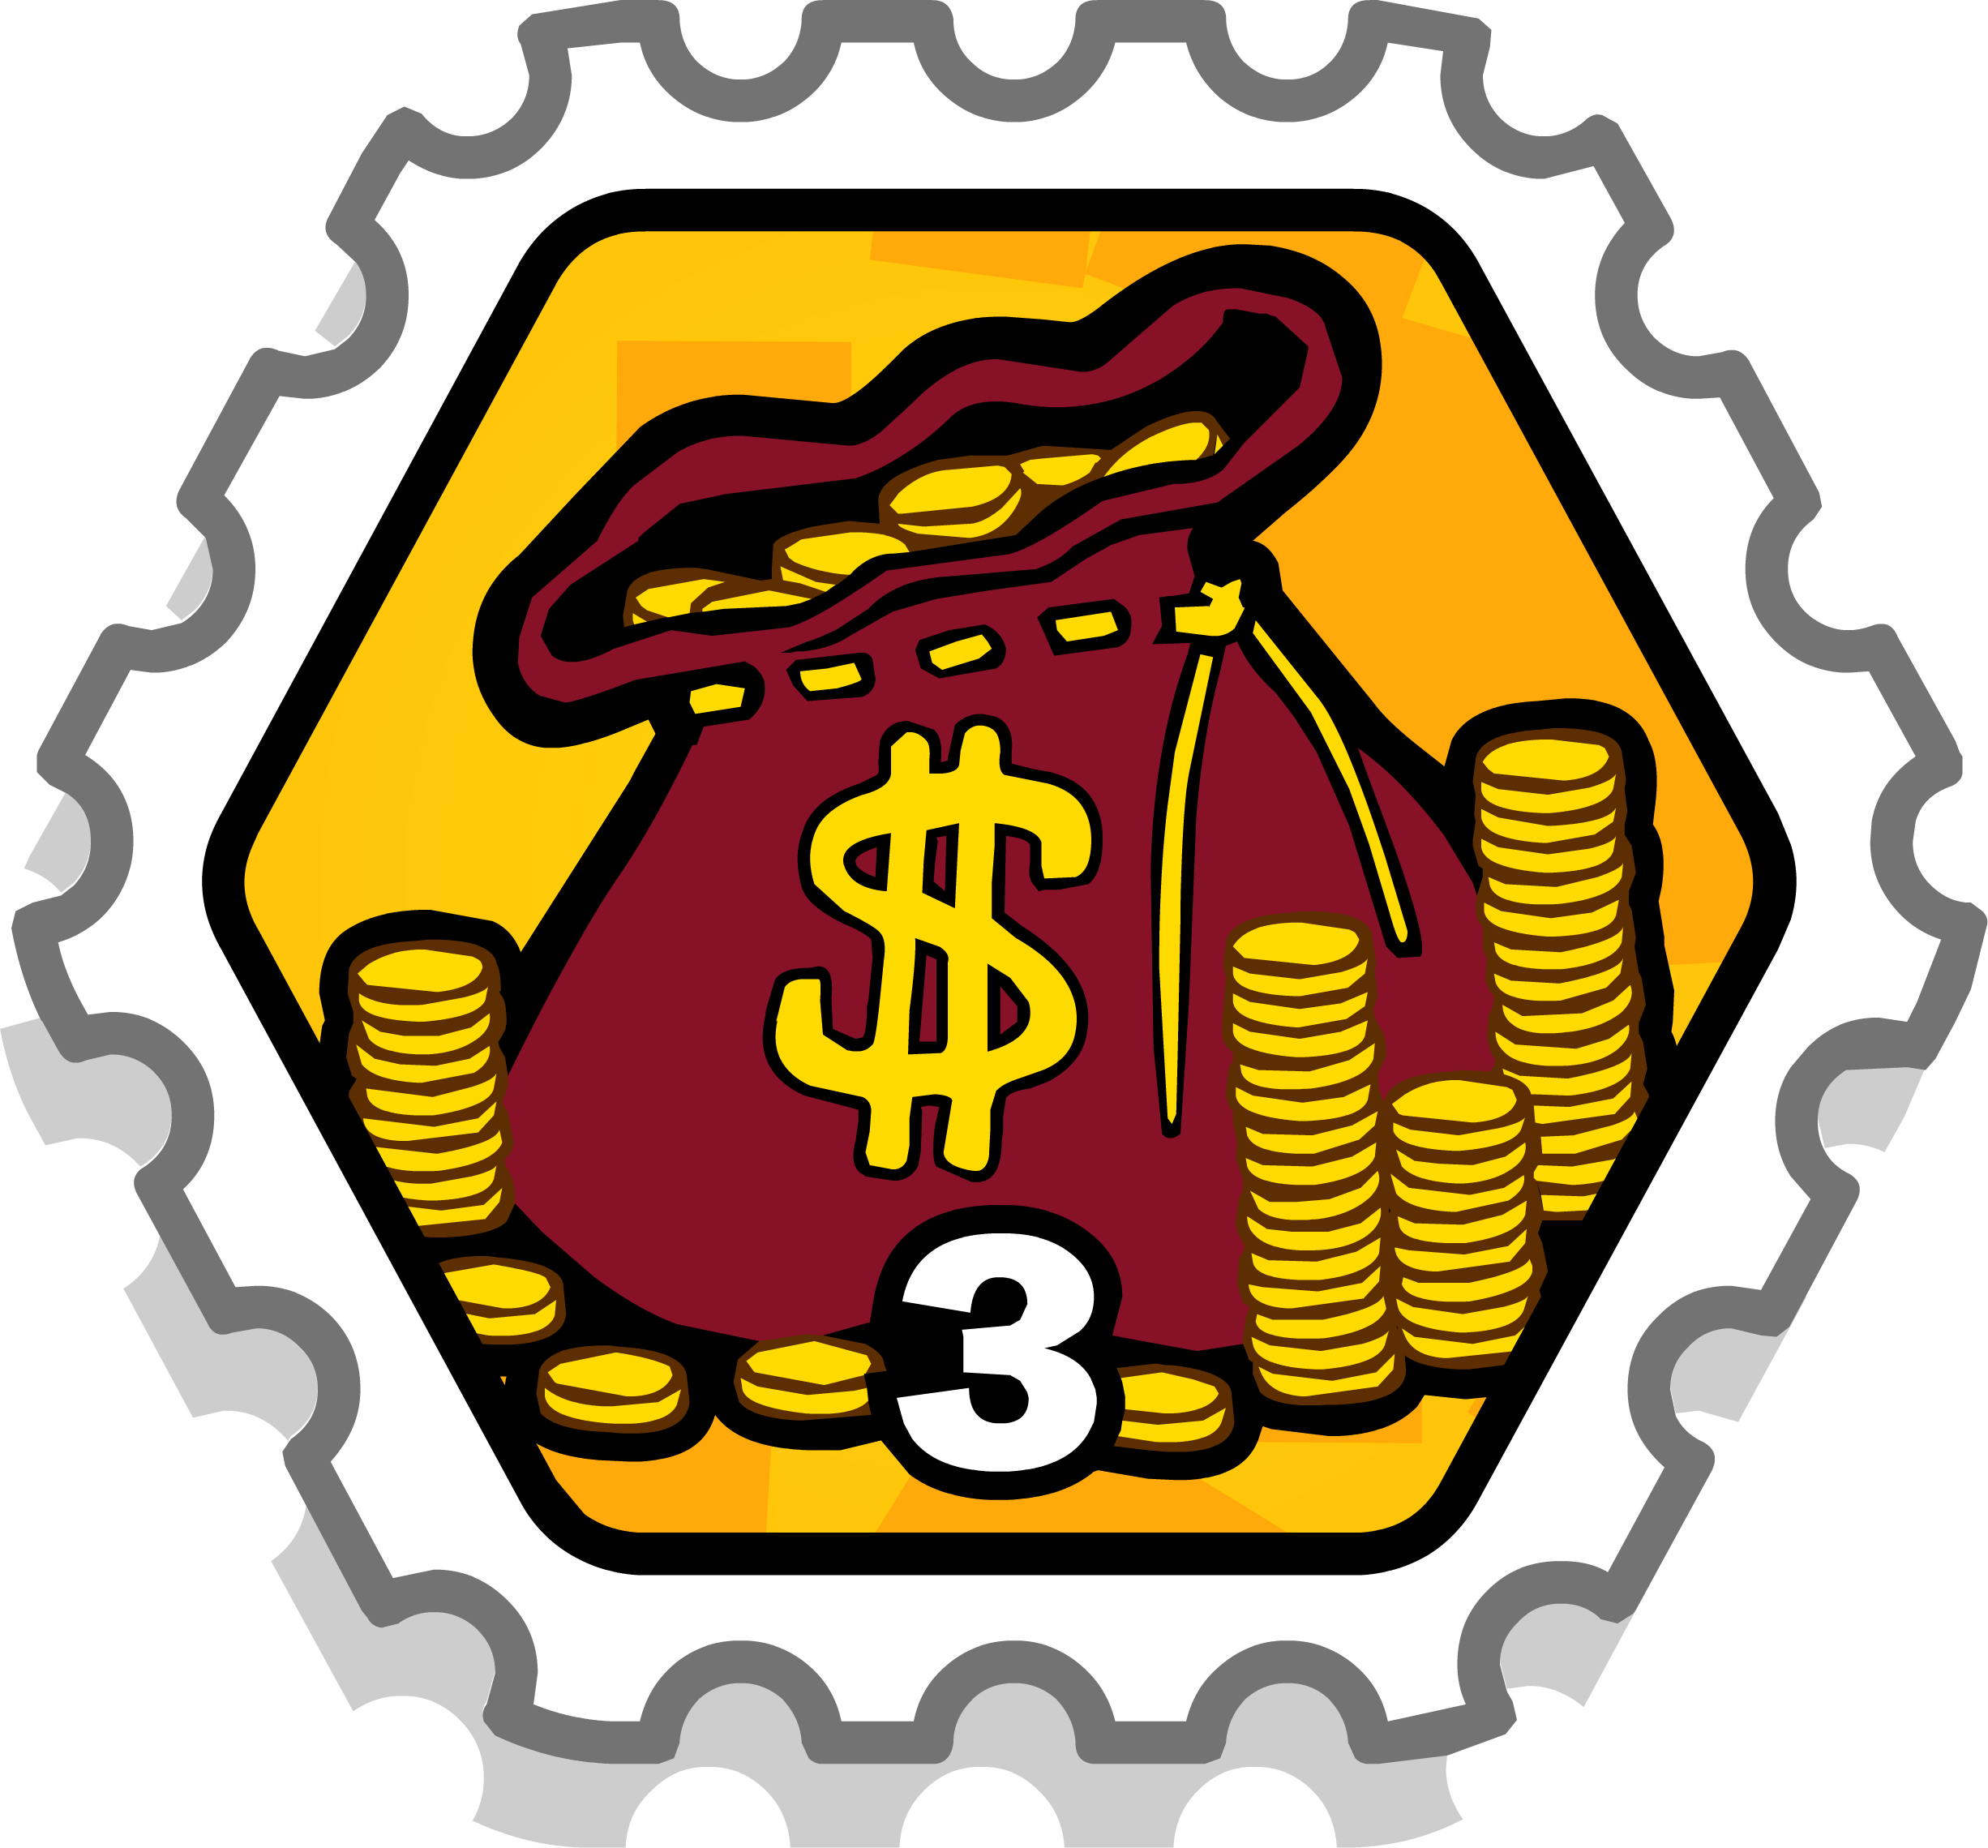 3 Coin Bags Stamp (Thin Ice)